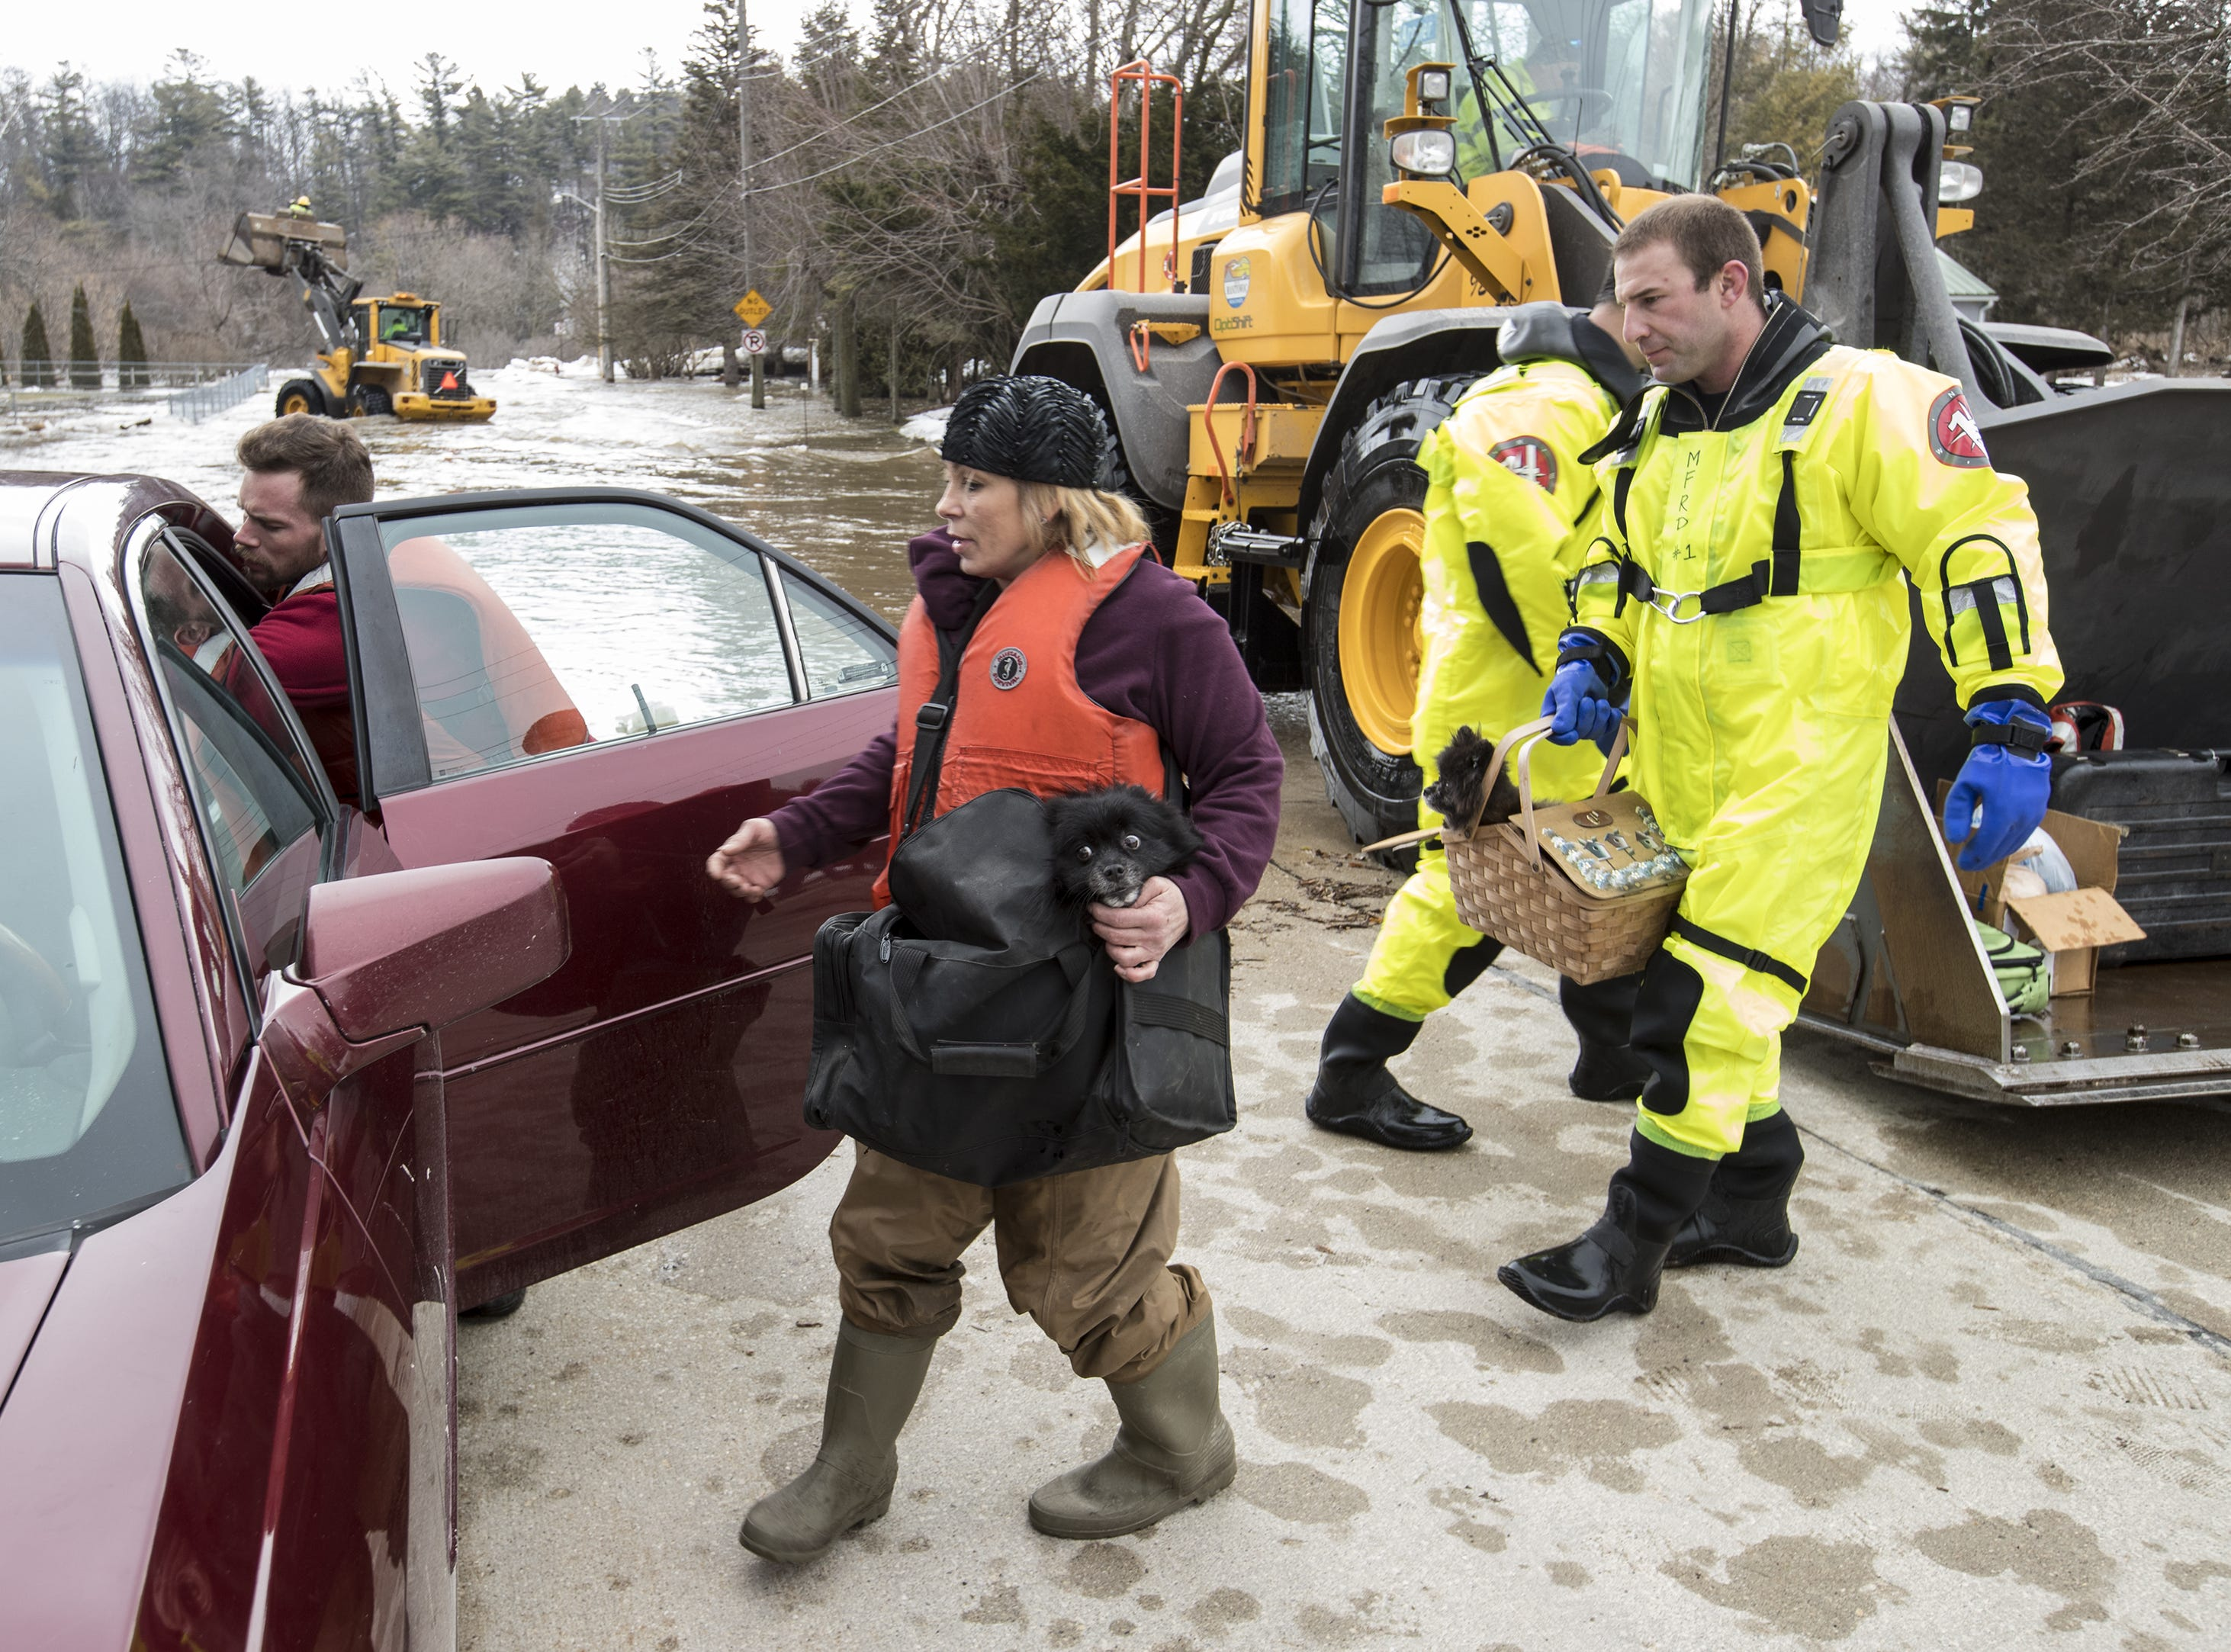 Annette Soukup loads her dog and belongings into her car with help from firefighter Kevin Fabian after being evacuated from her residence at 41st and Archer due to flooding on the Manitowoc River March 21 in Manitowoc.